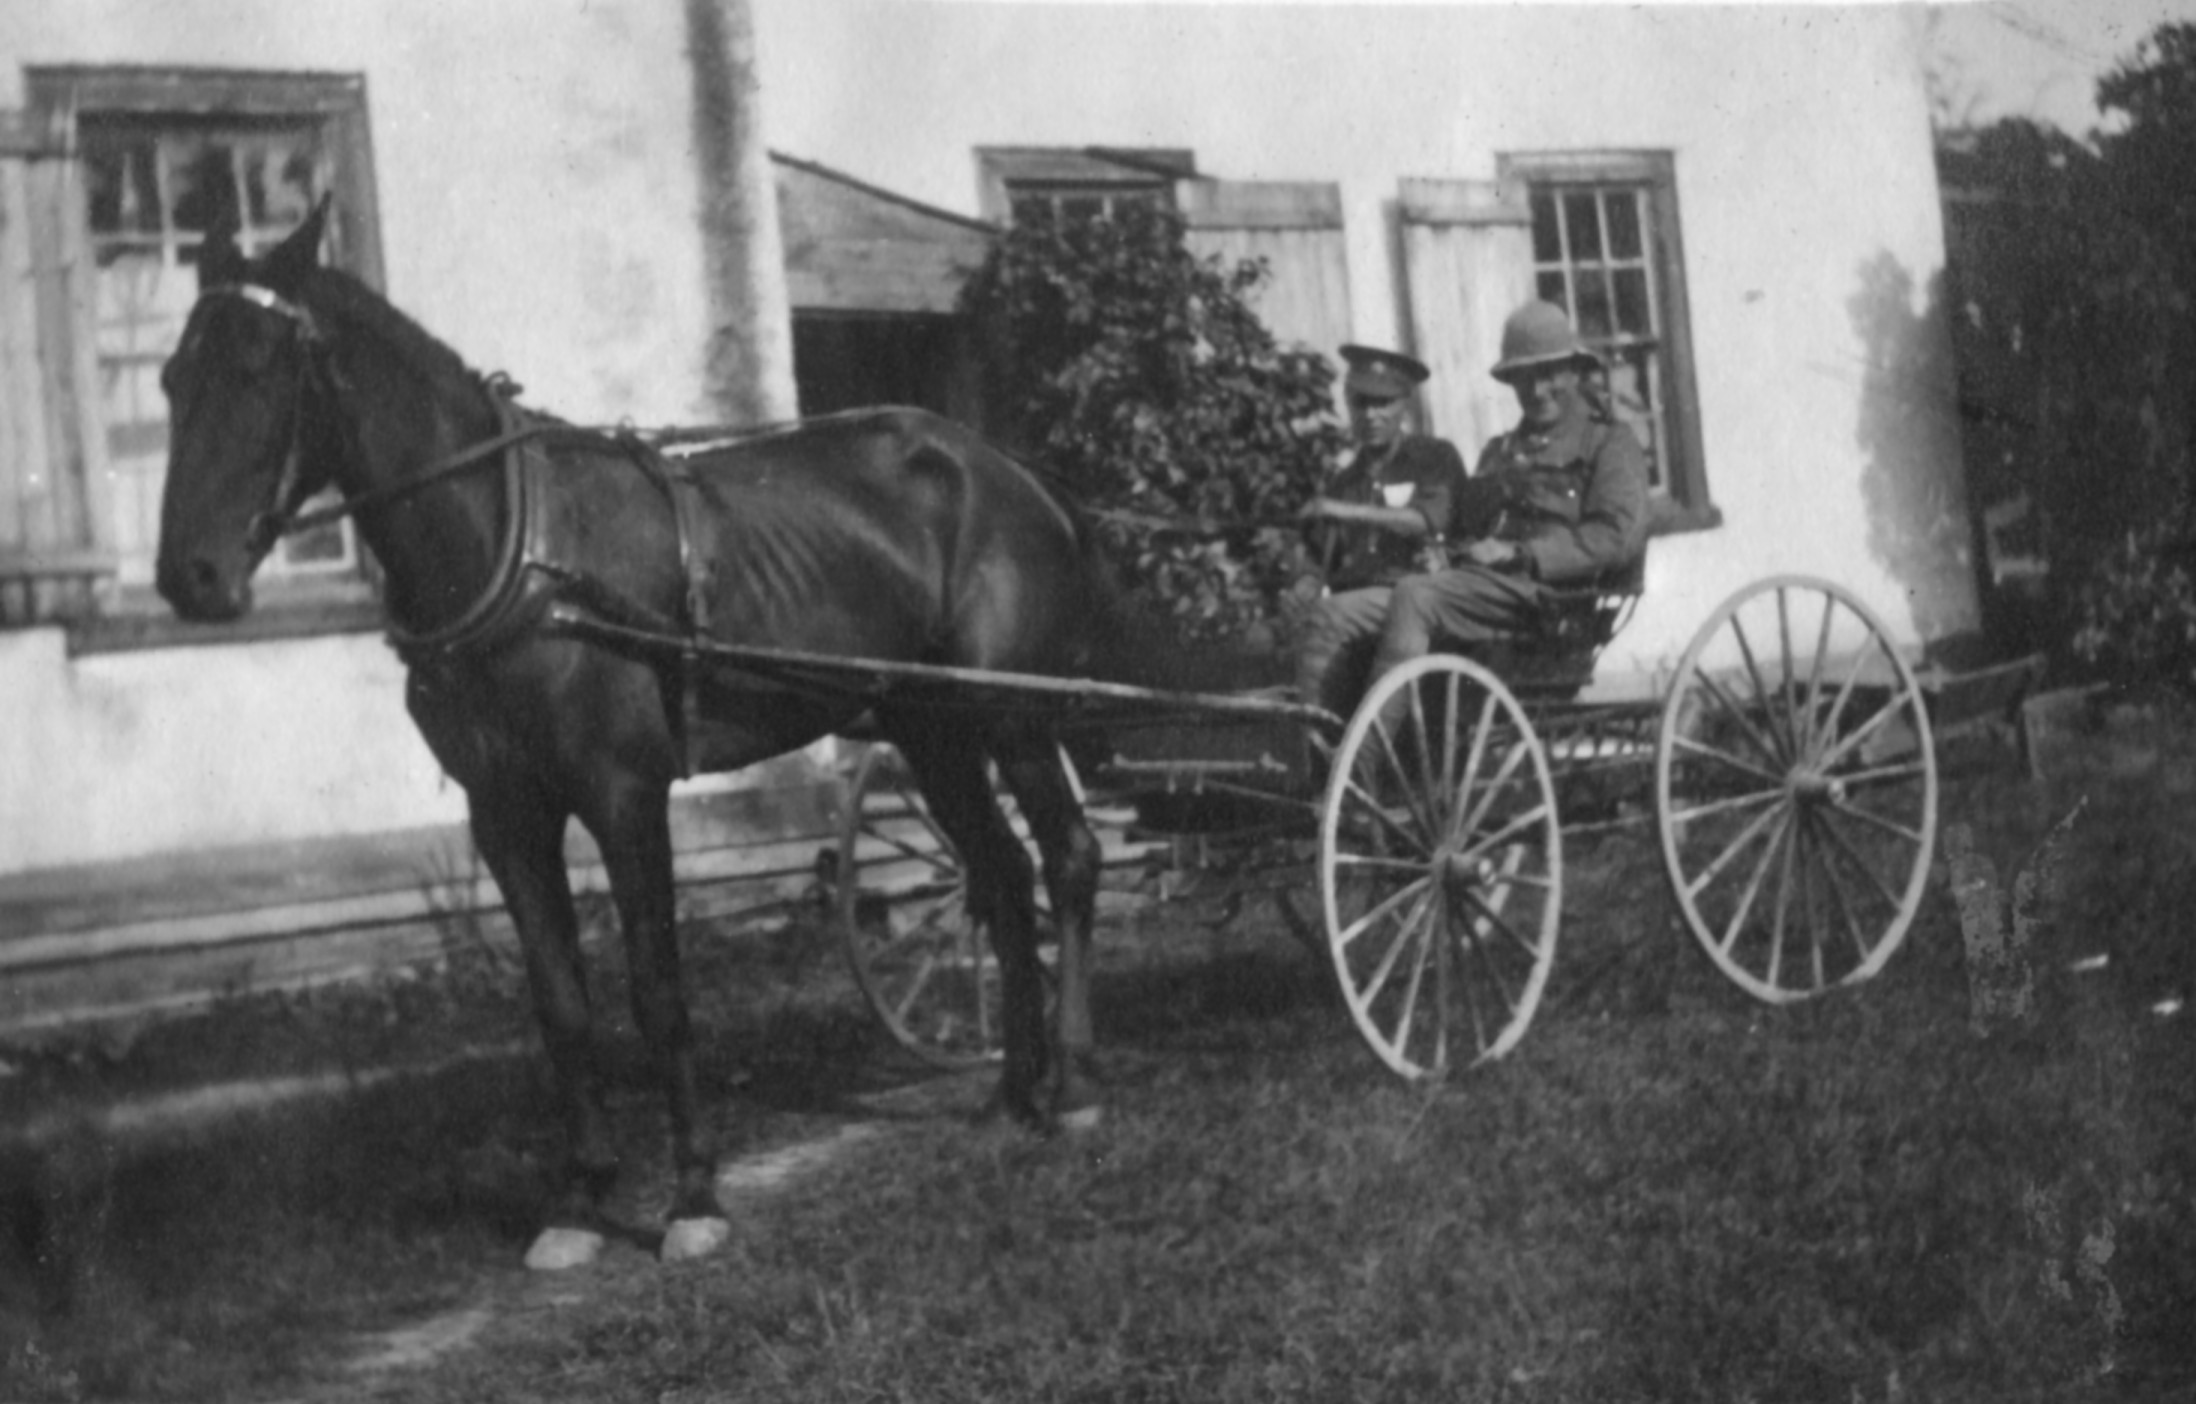 Photo of horse pulling a wagon with two soldiers in it.